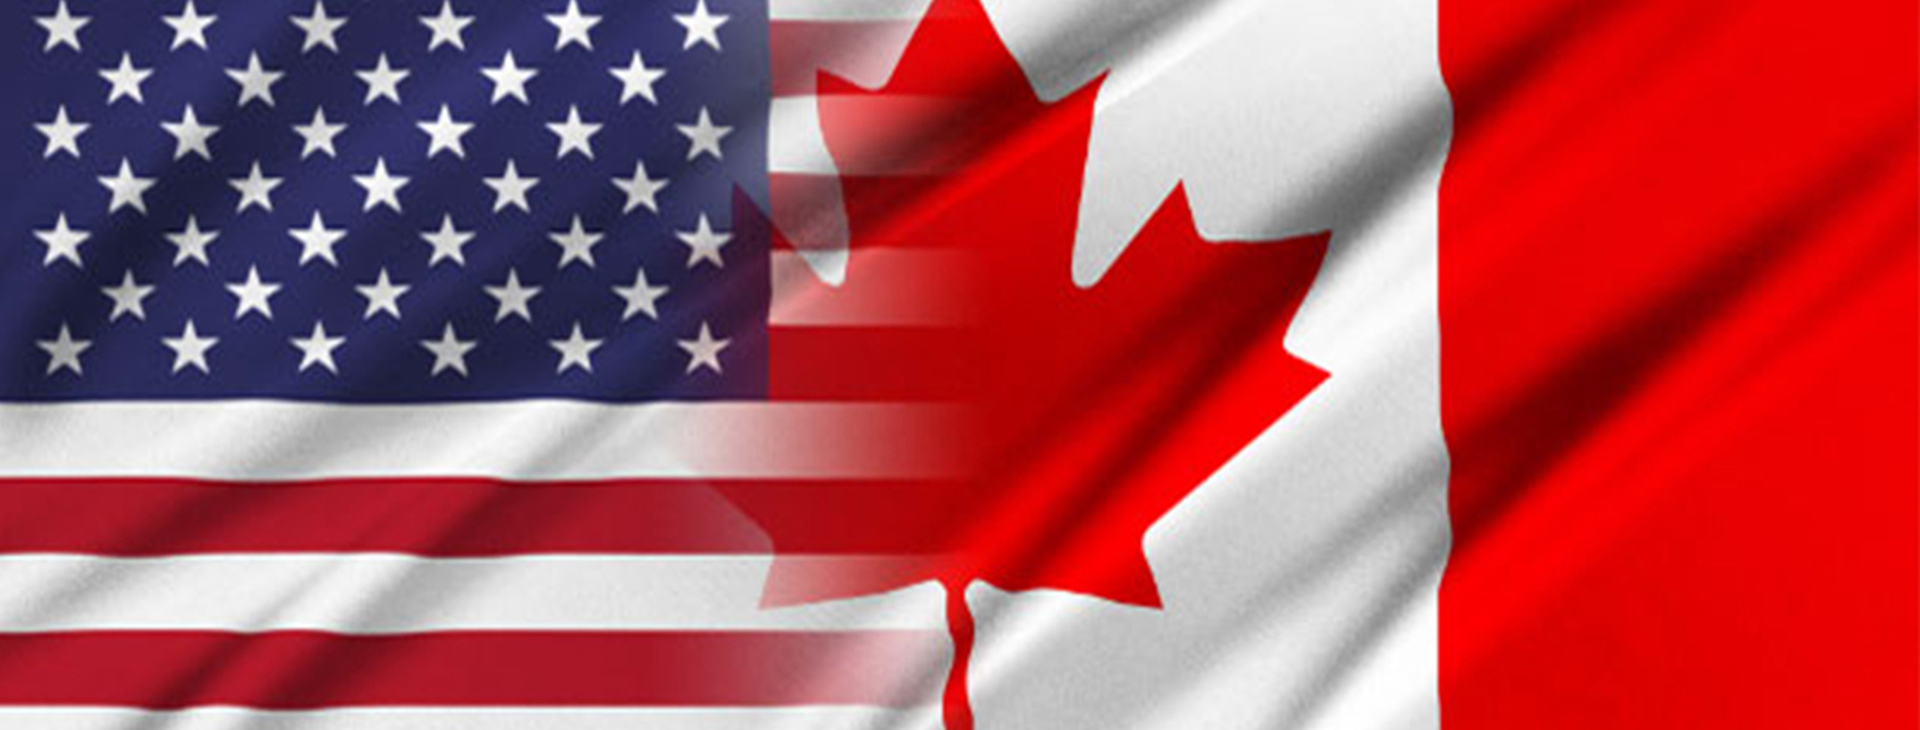 Online dating in usa and canada